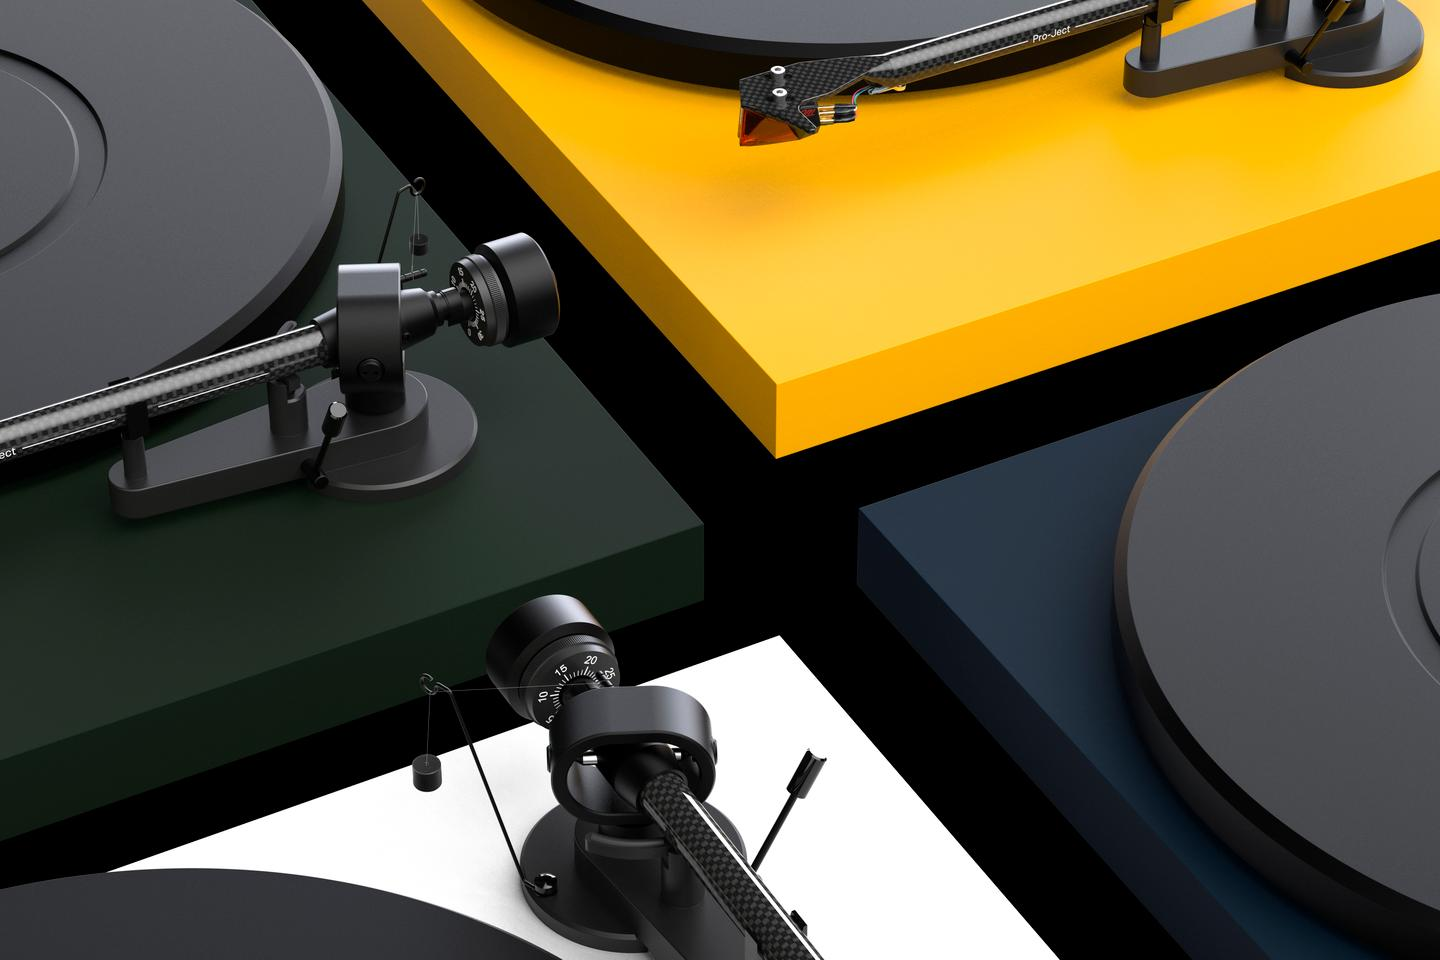 The Debut Carbon Evo turntable is available in nine finishes